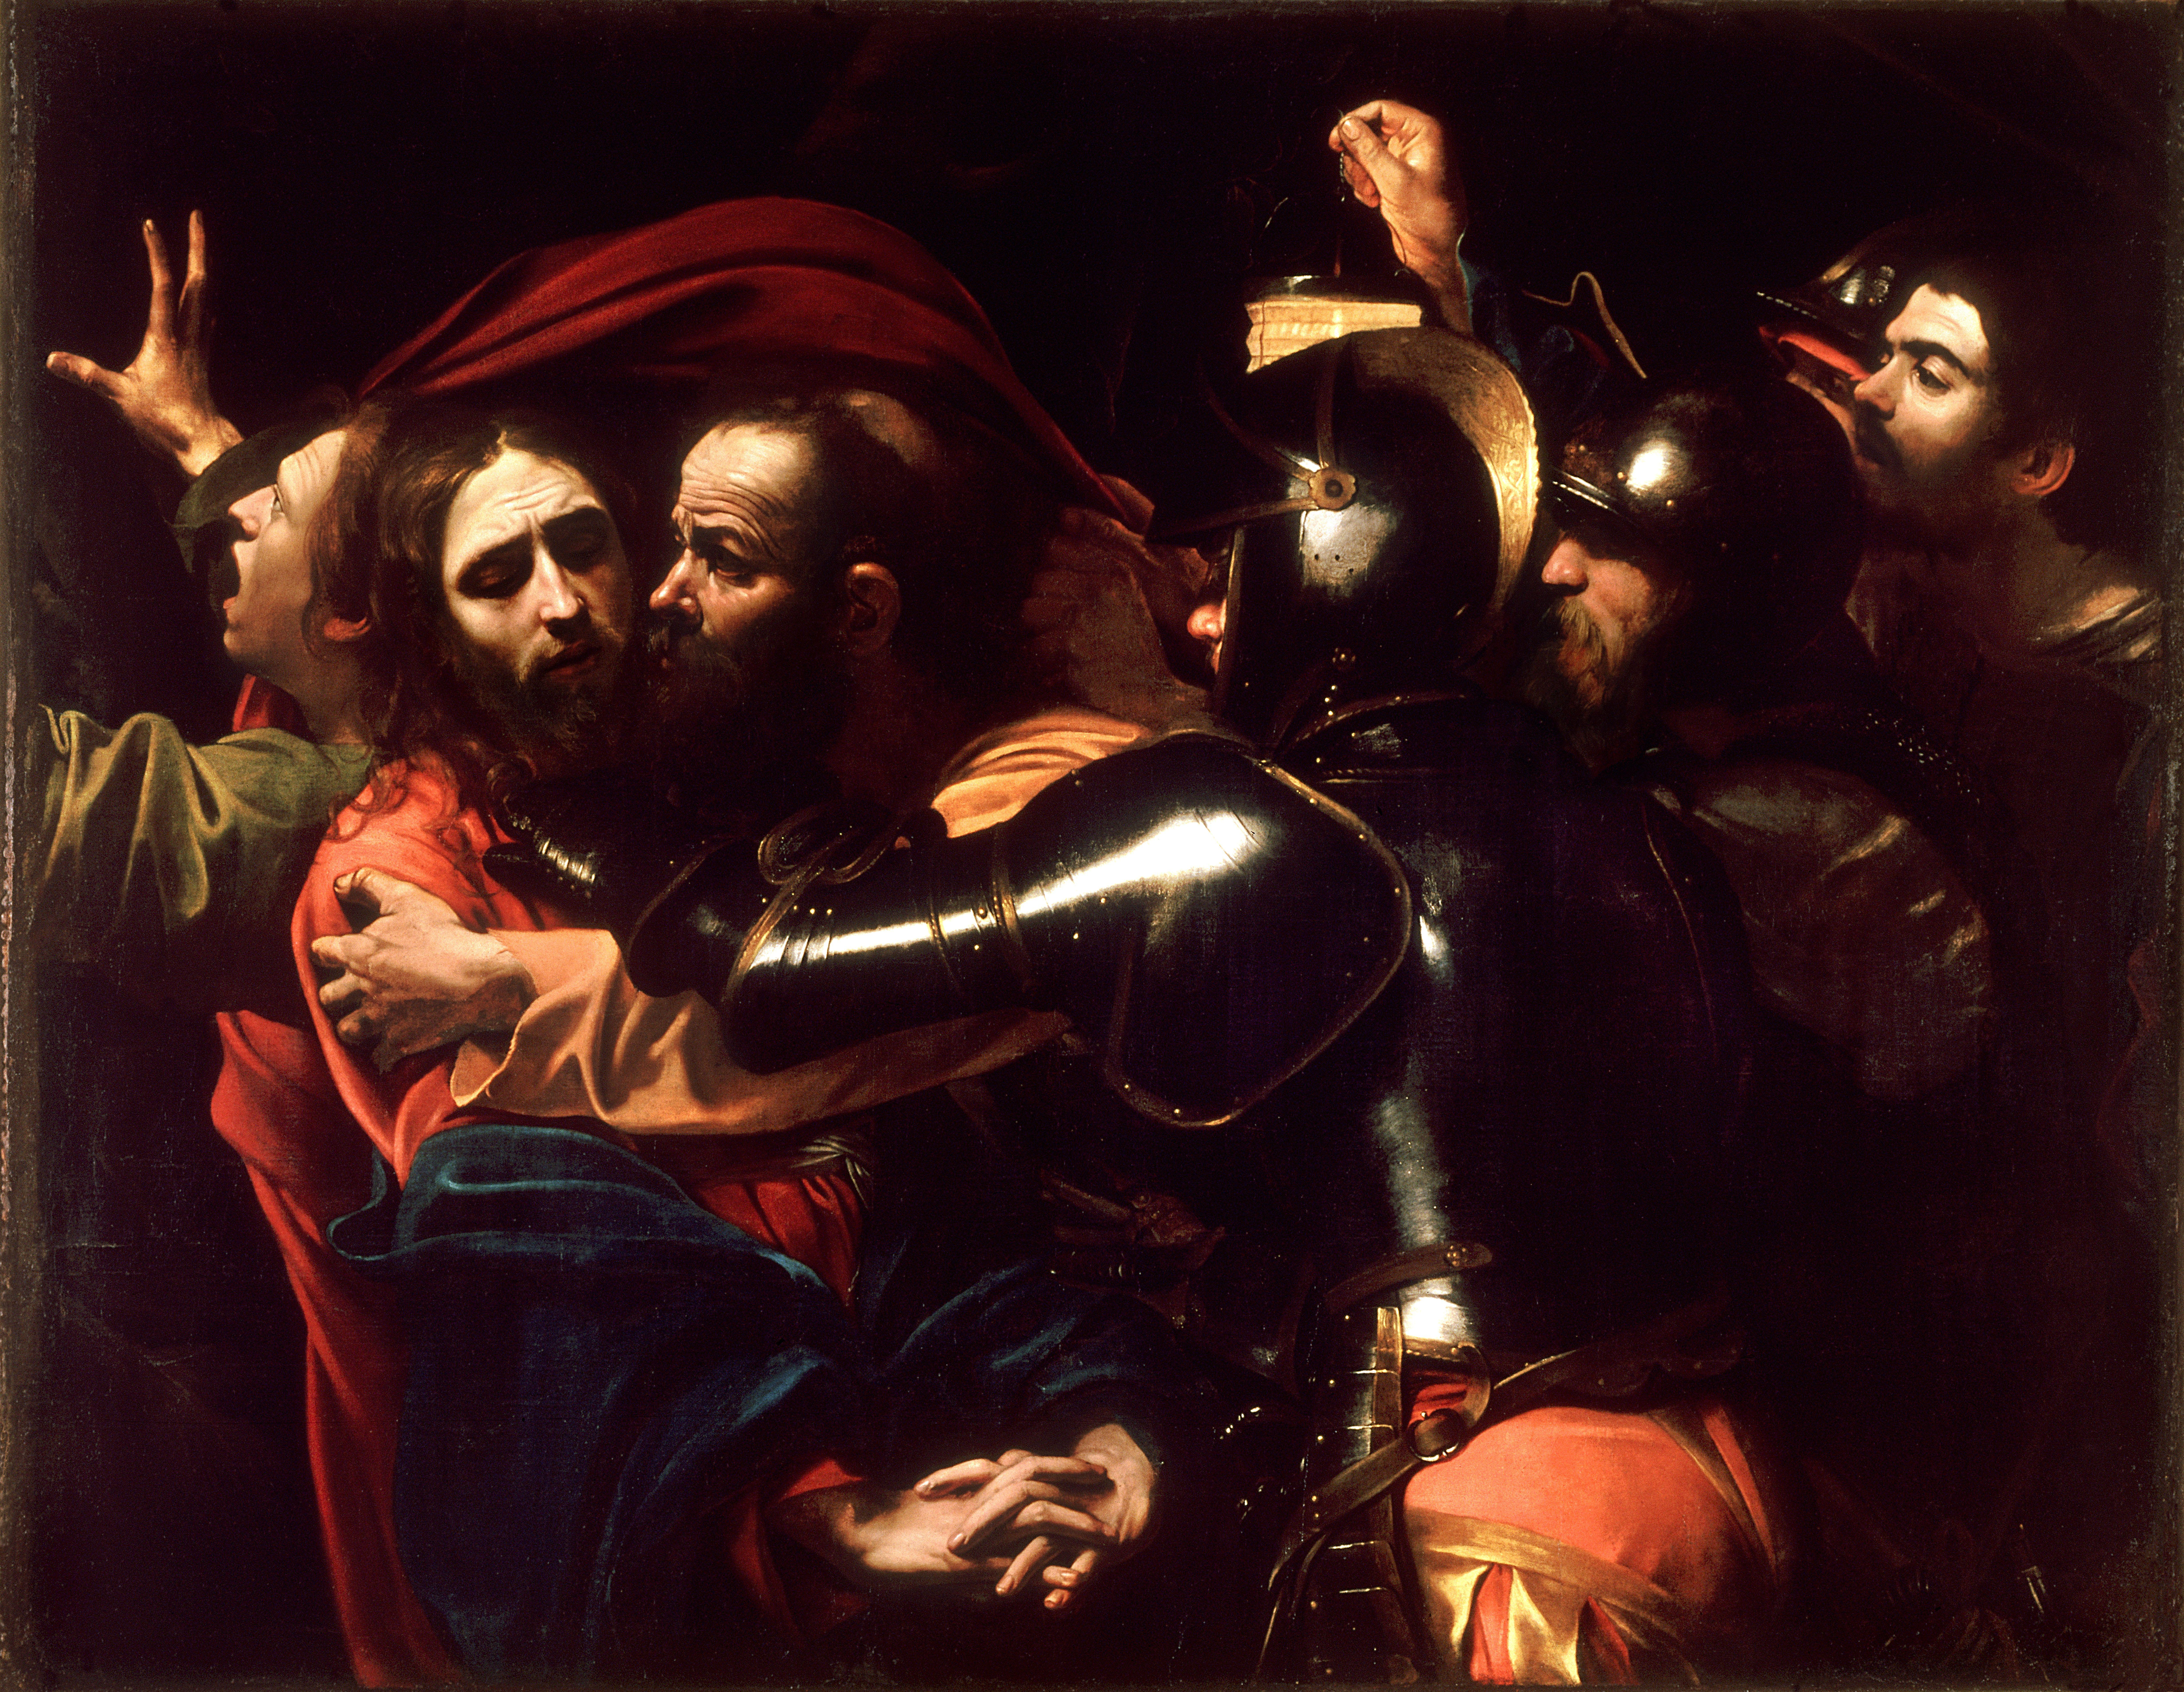 The_Taking_of_Christ-Caravaggio_(c.1602)